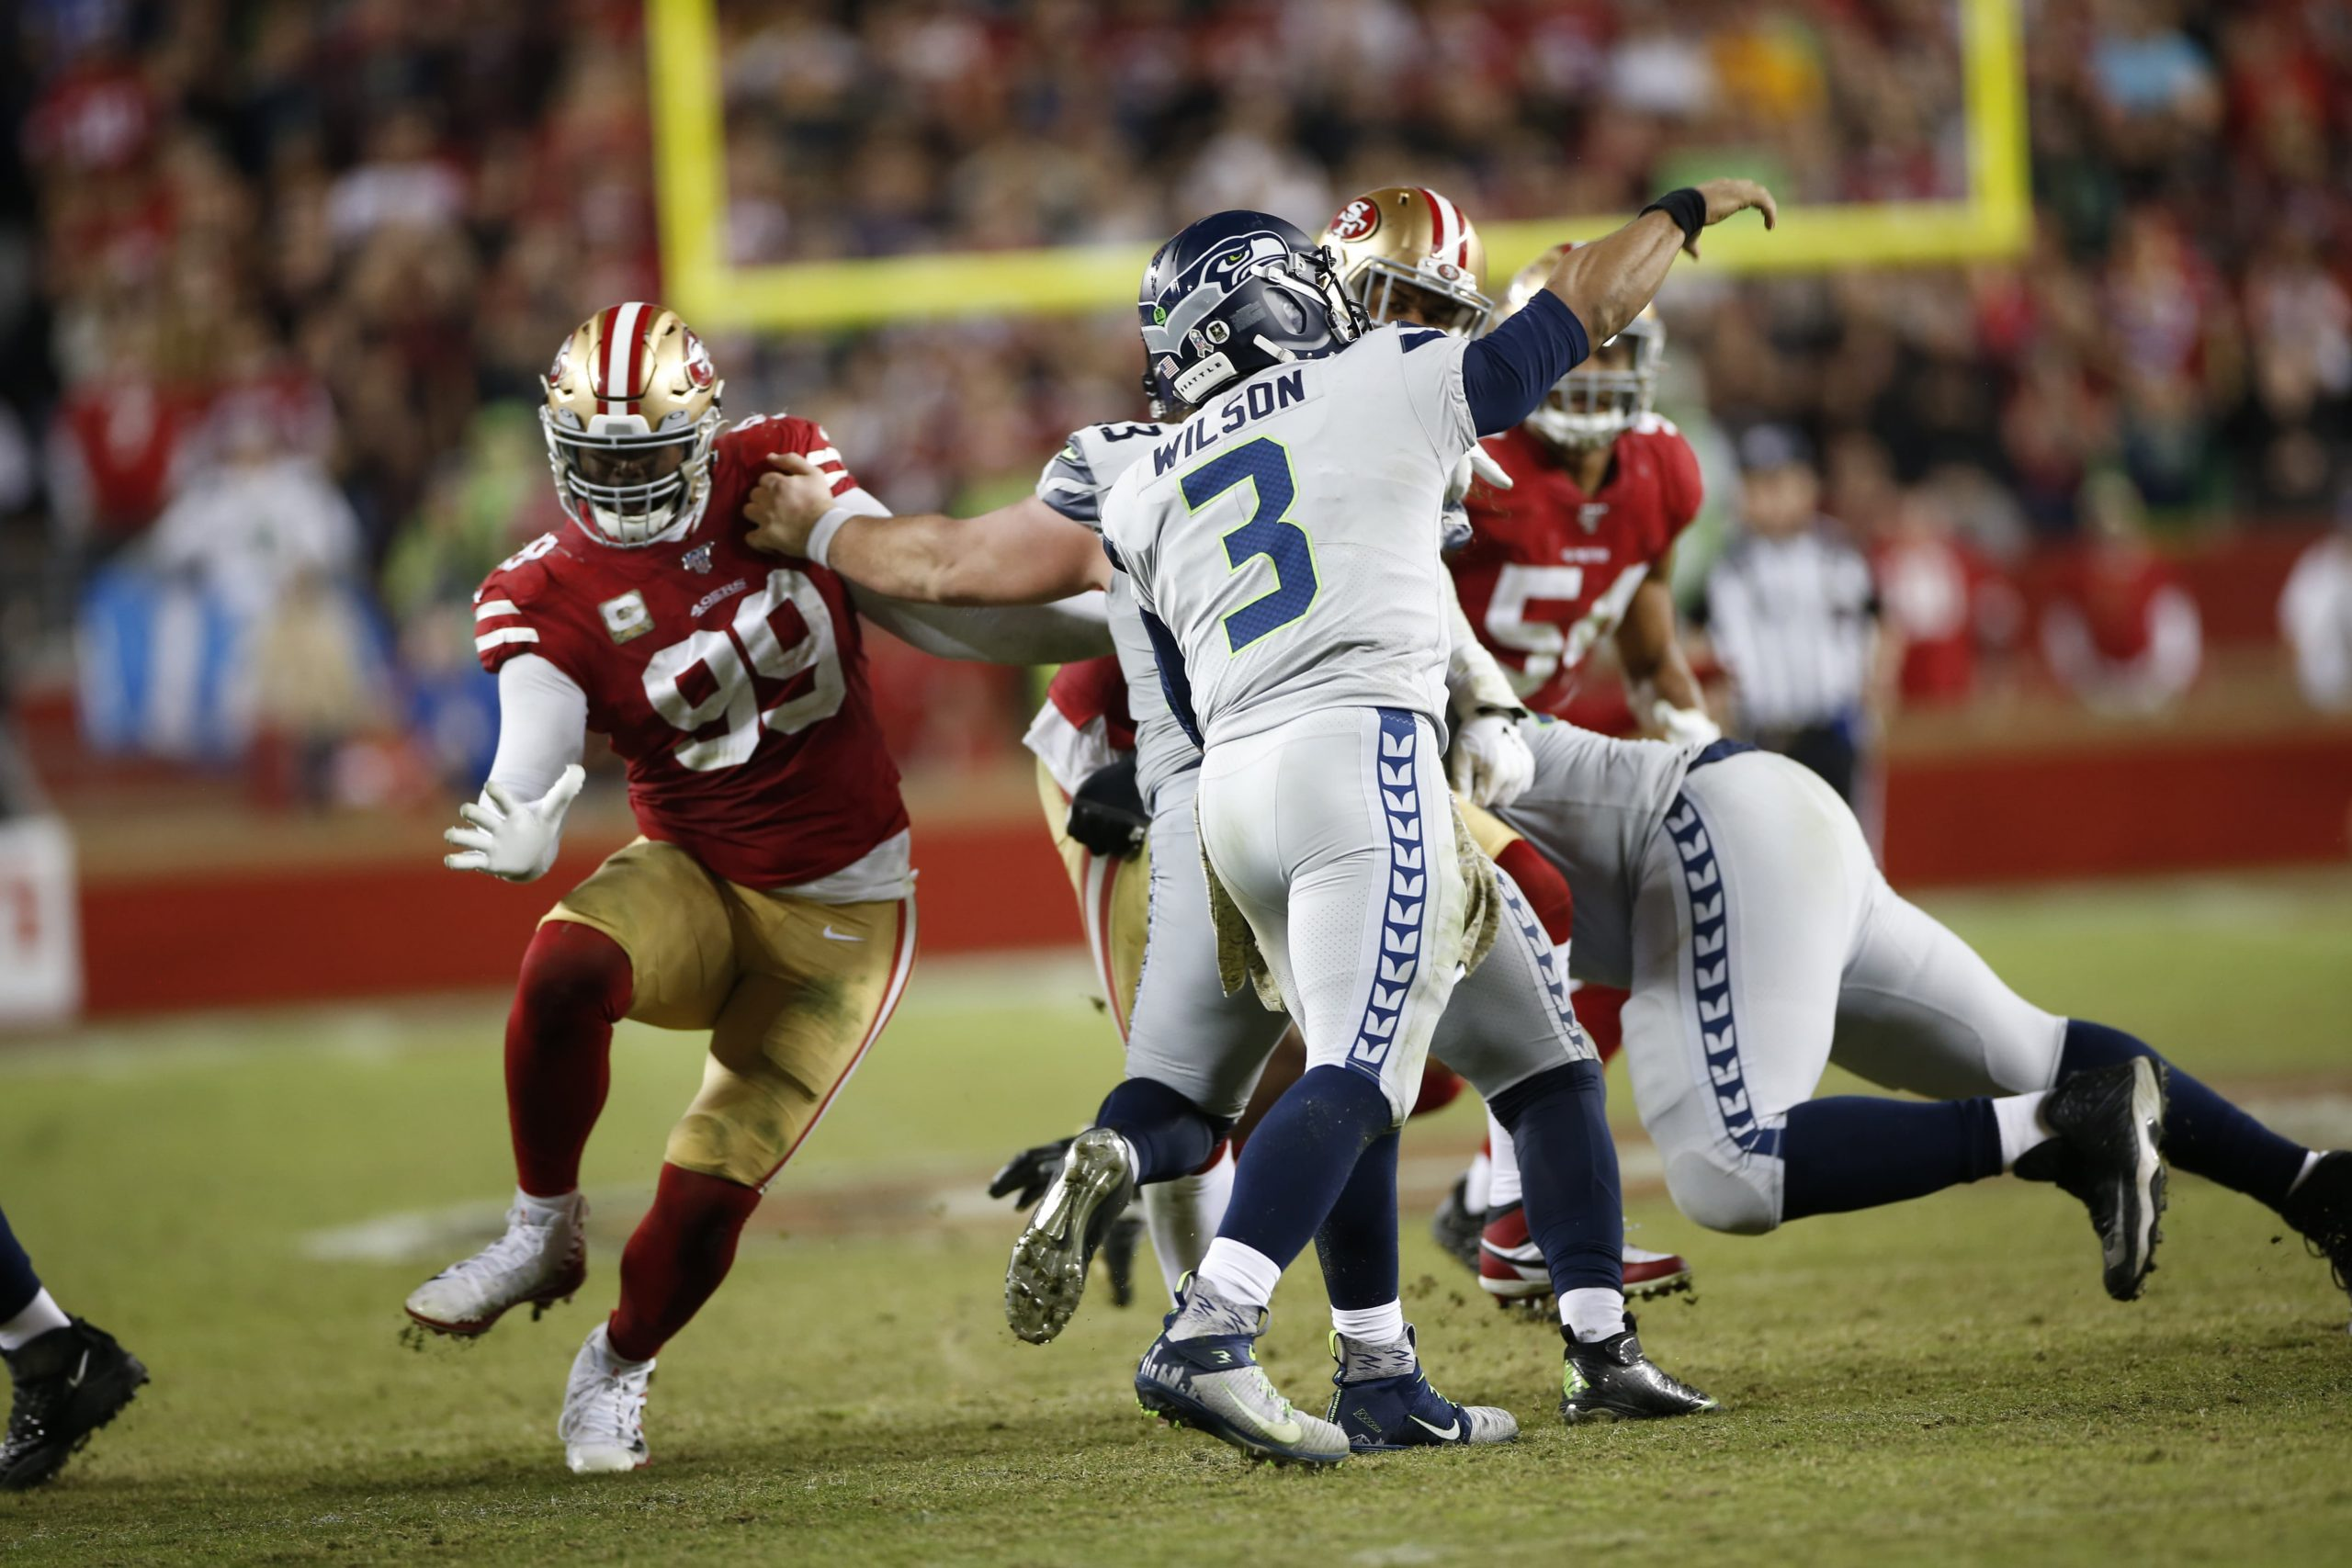 Seattle Seahawks quarterback Russell Wilson throwing a pass against the San Francisco 49ers